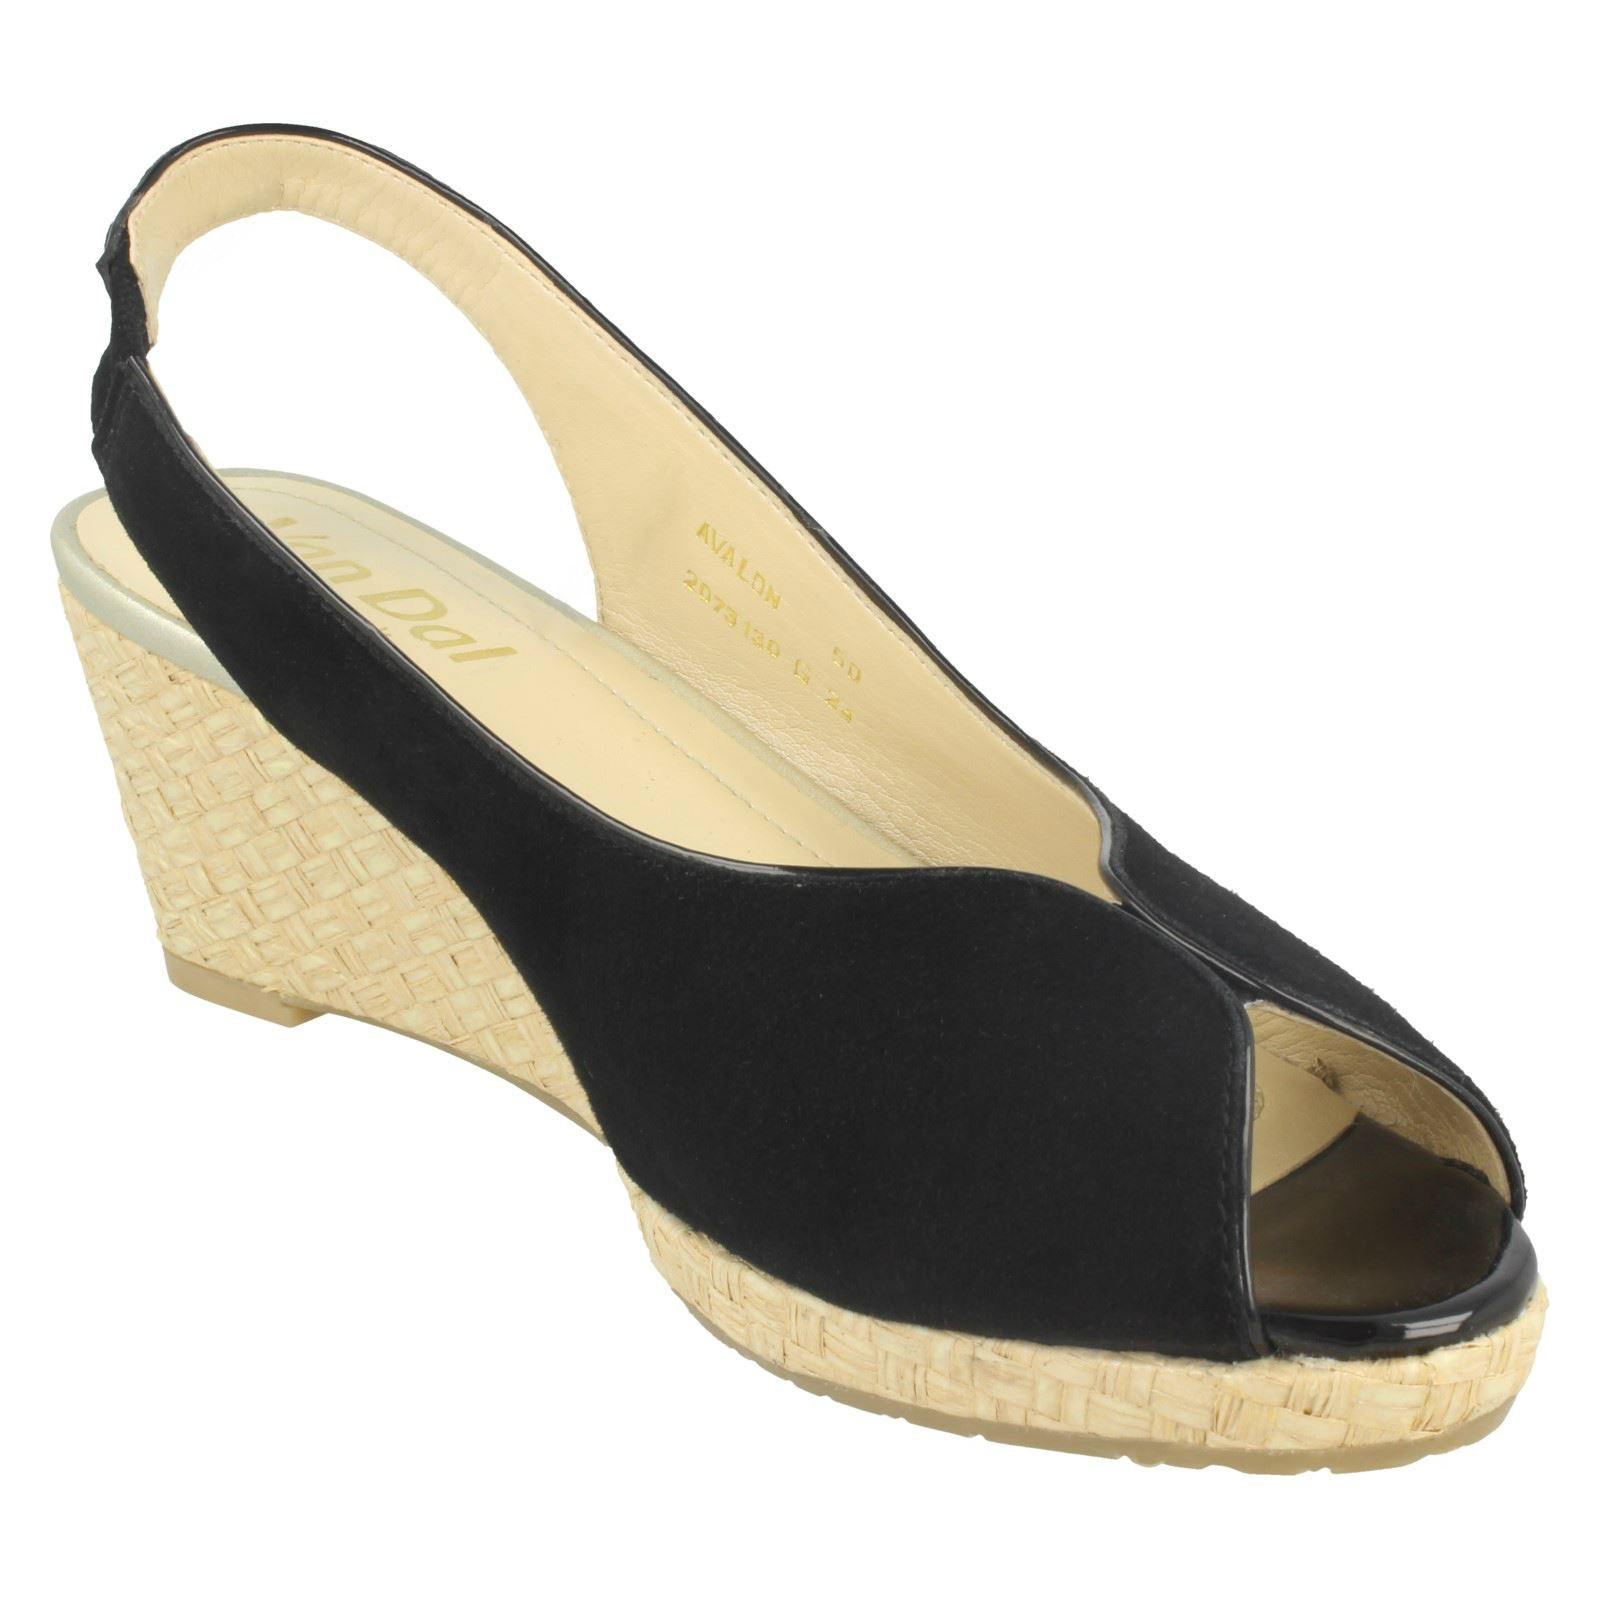 Ladies-Van-Dal-Leather-Wedge-Sandal-With-Woven-Detail-Avalon thumbnail 9